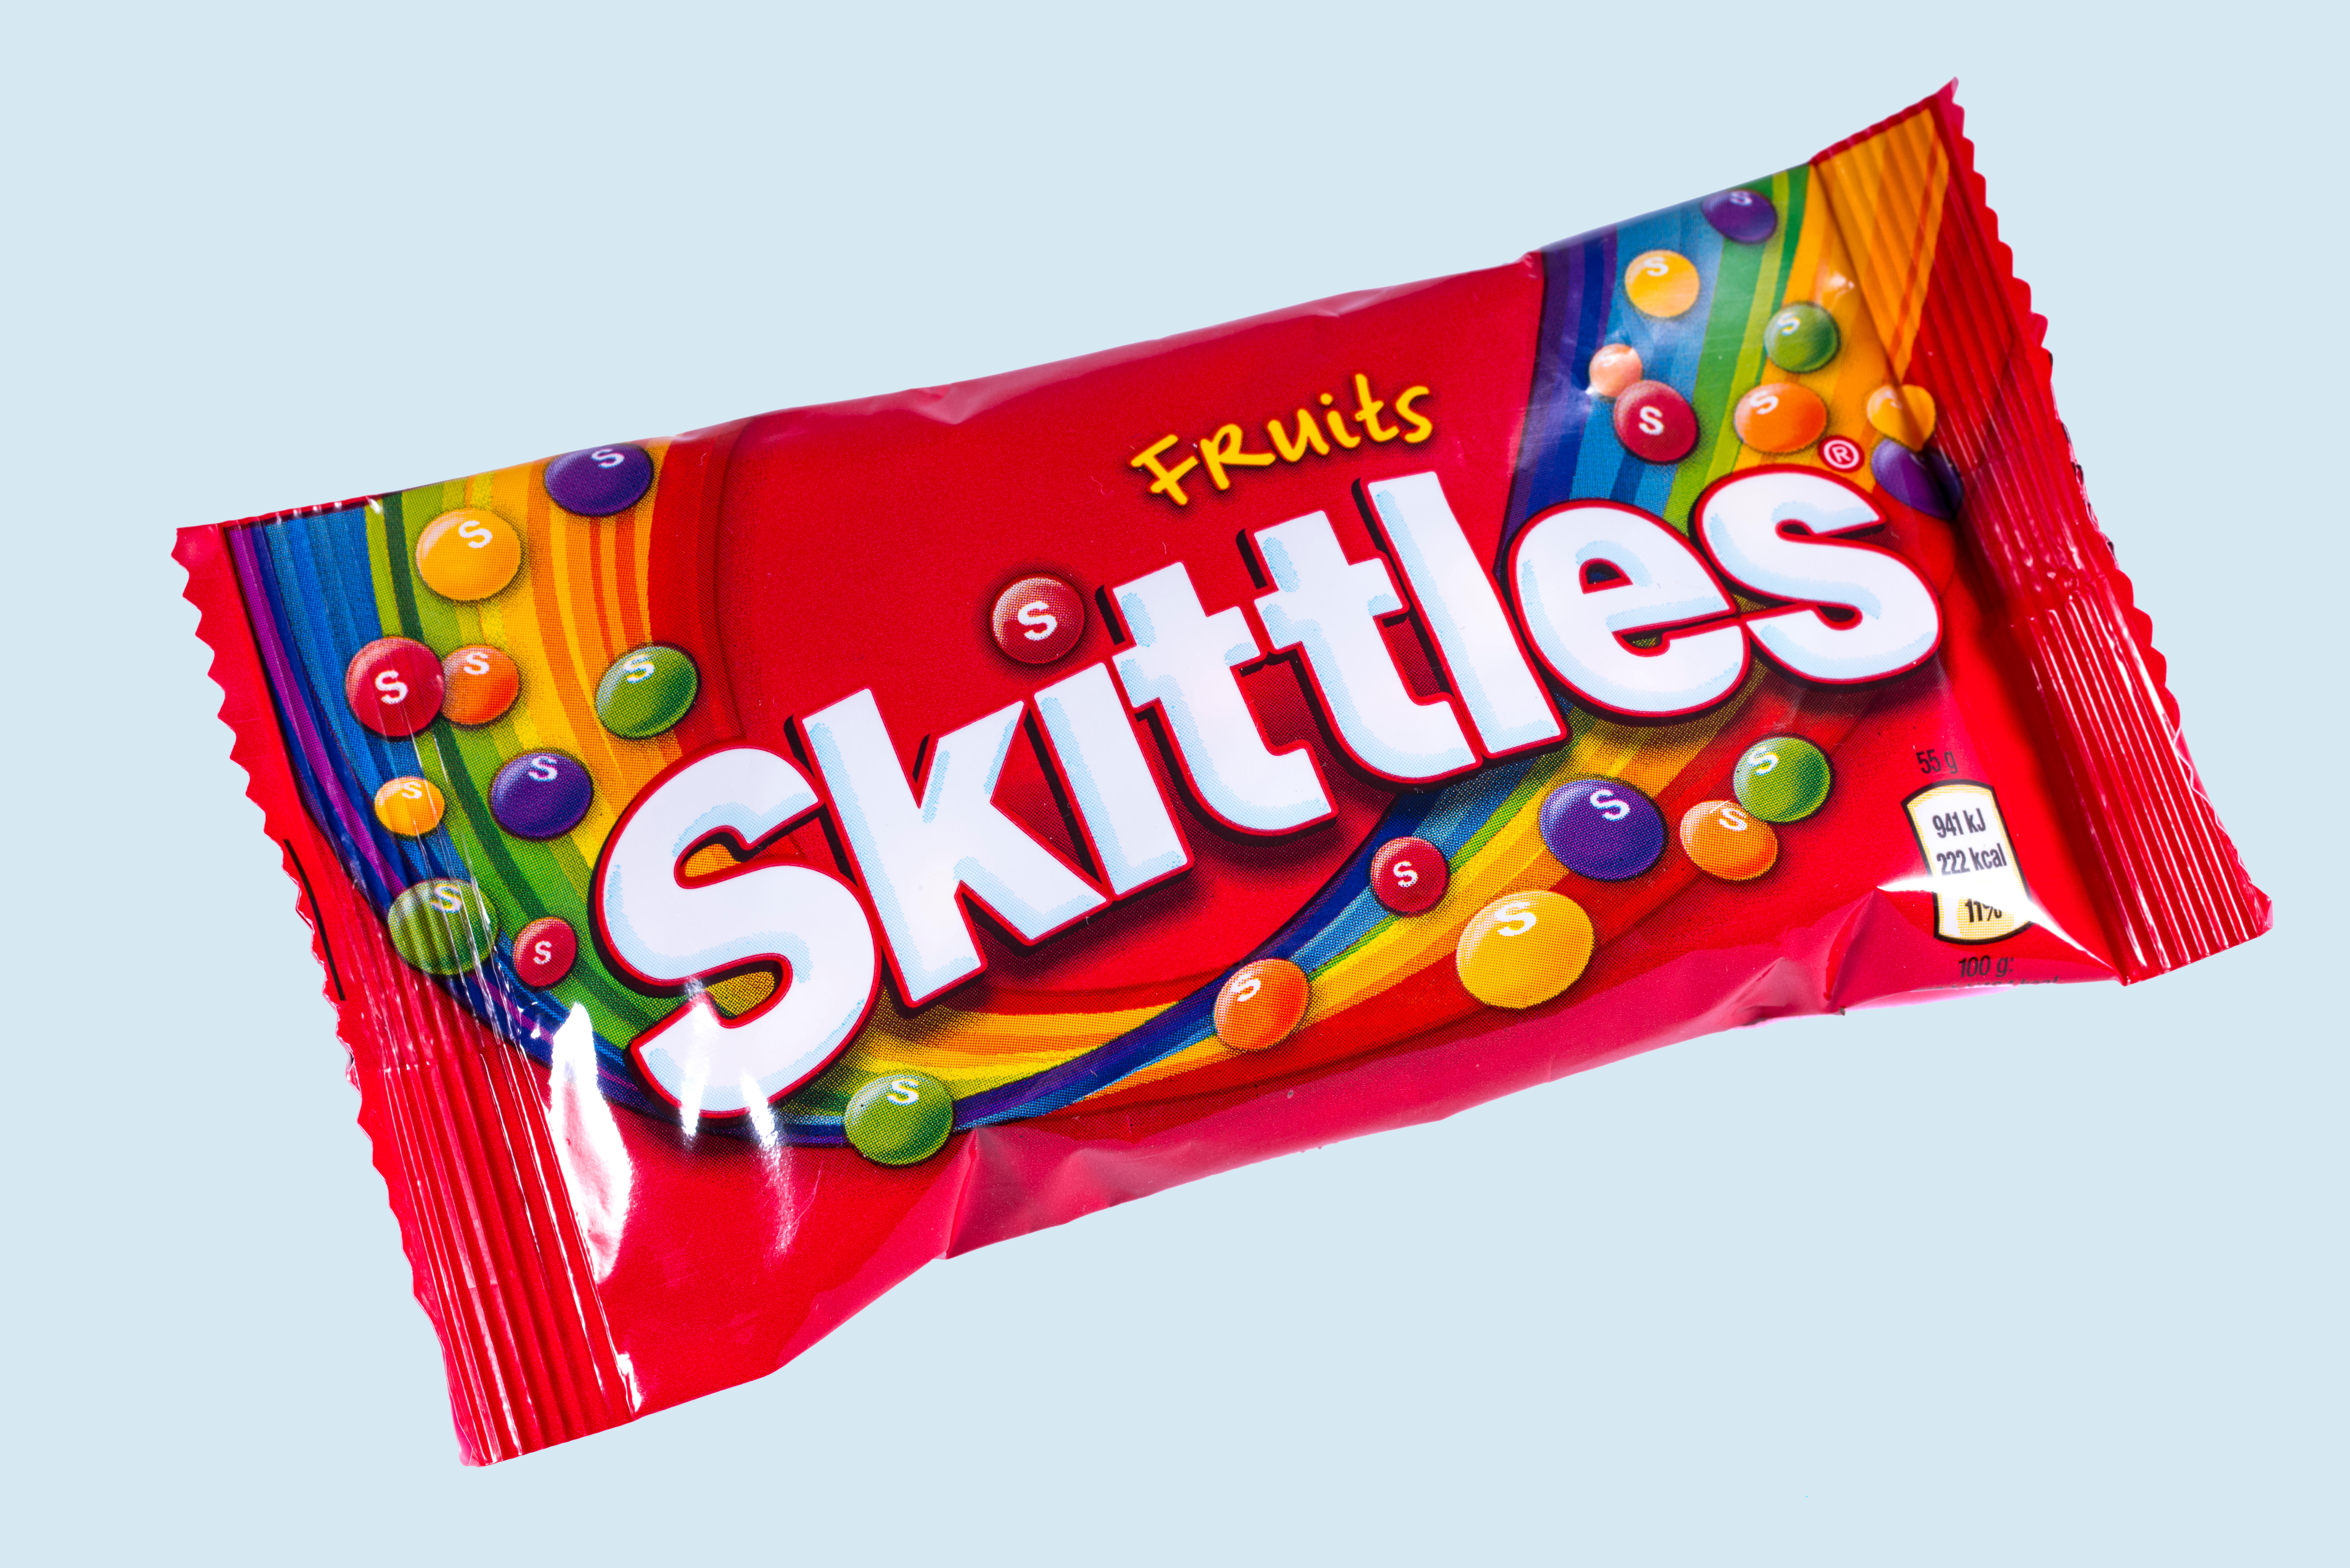 LONDON, UK - OCTOBER 13TH 2016: An unopened pack of Fruit Skittles over a plain white background, on 13th October 2016.